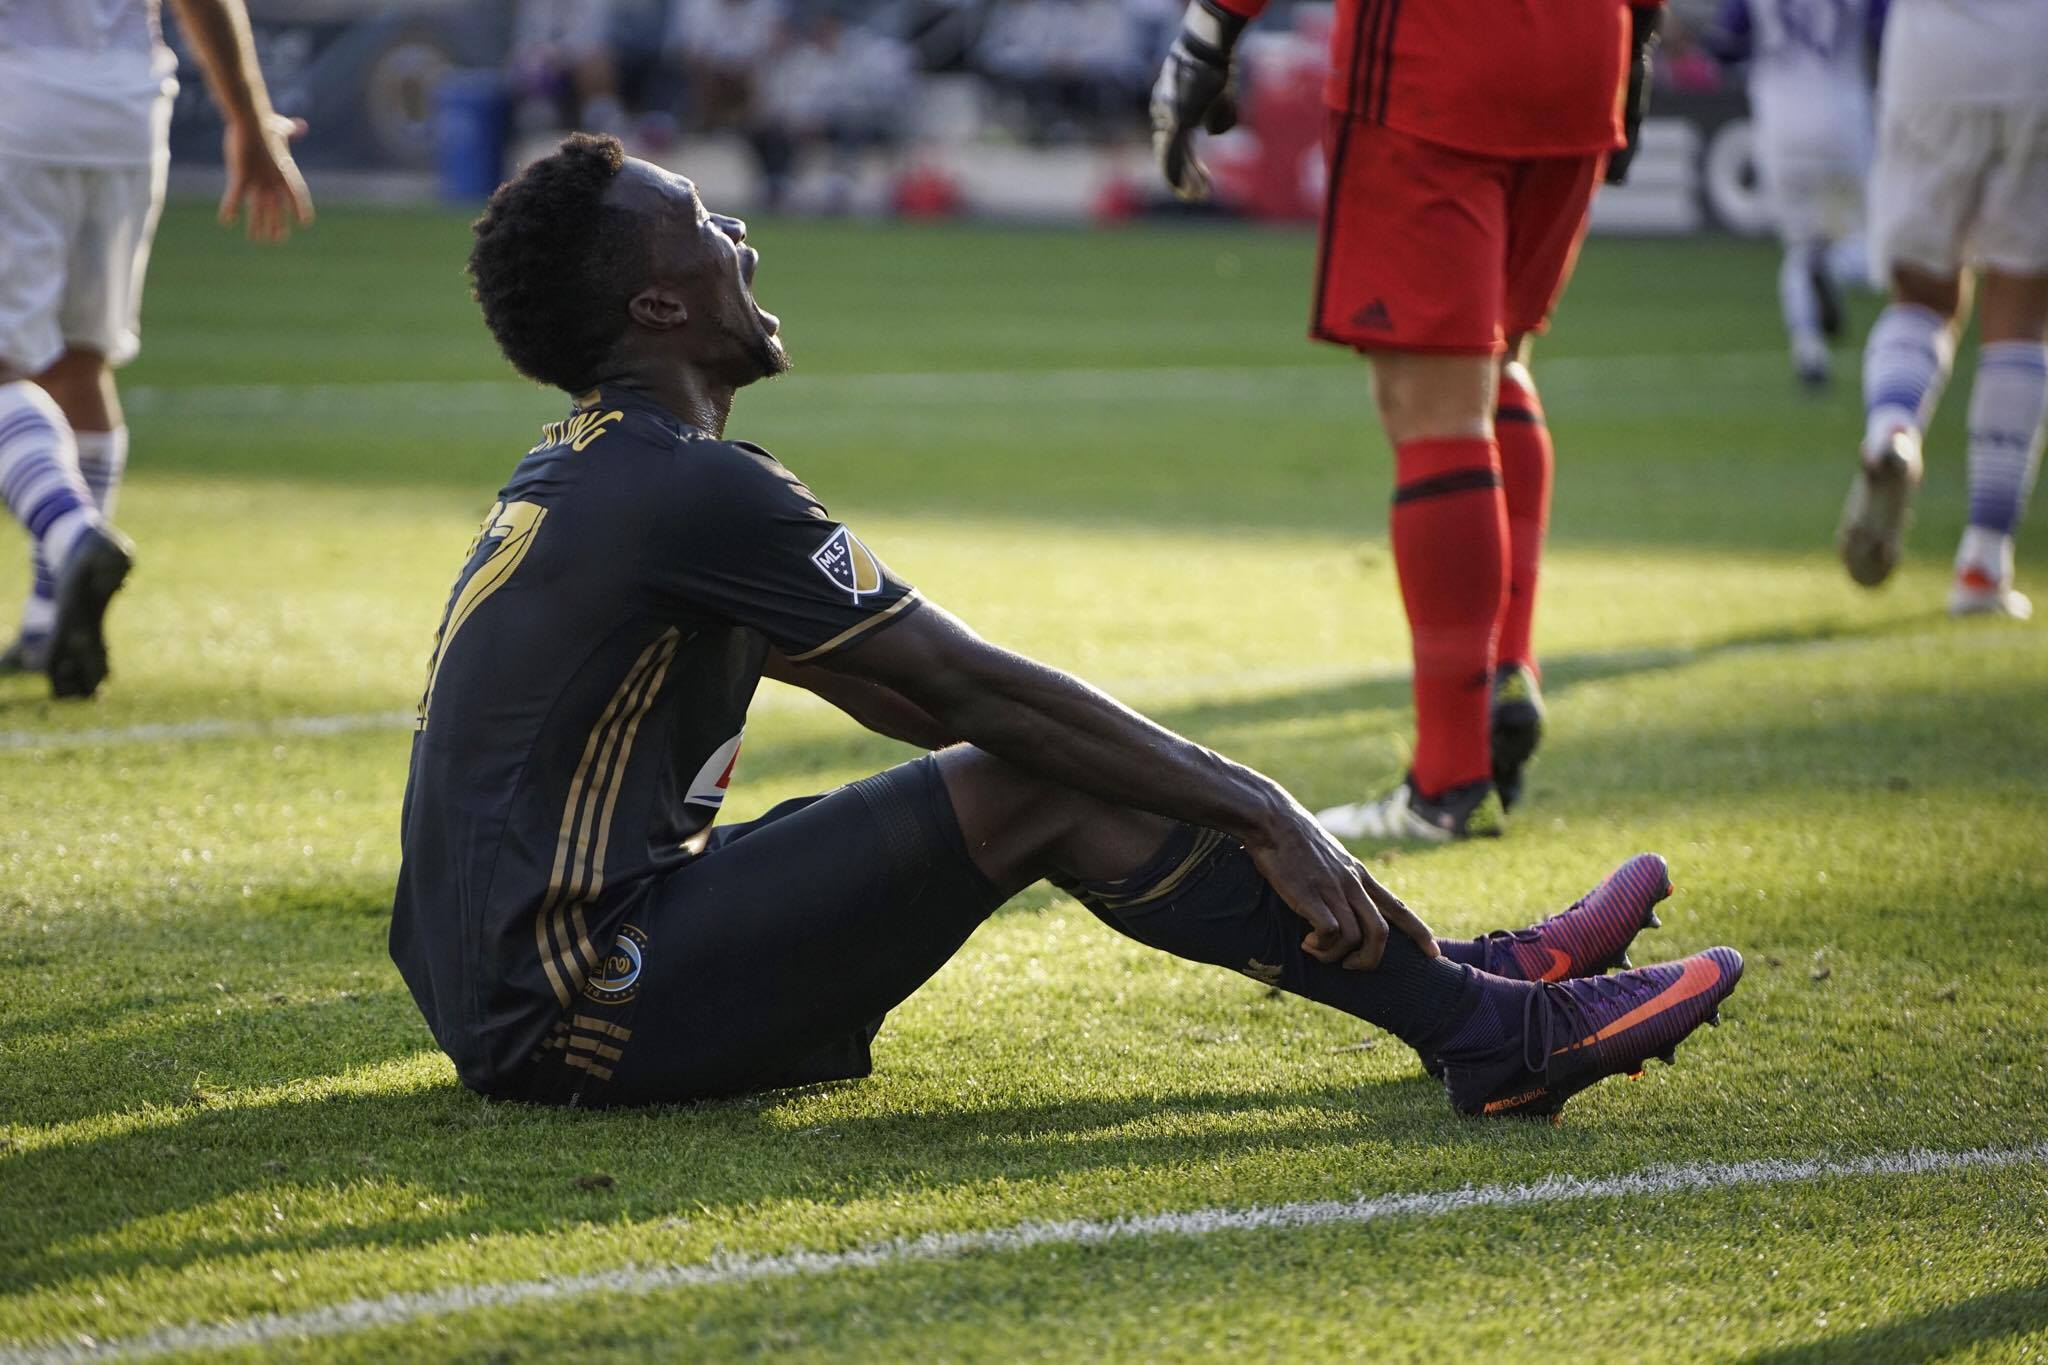 It was frustrating at times for Sapong, especially as the season went on.